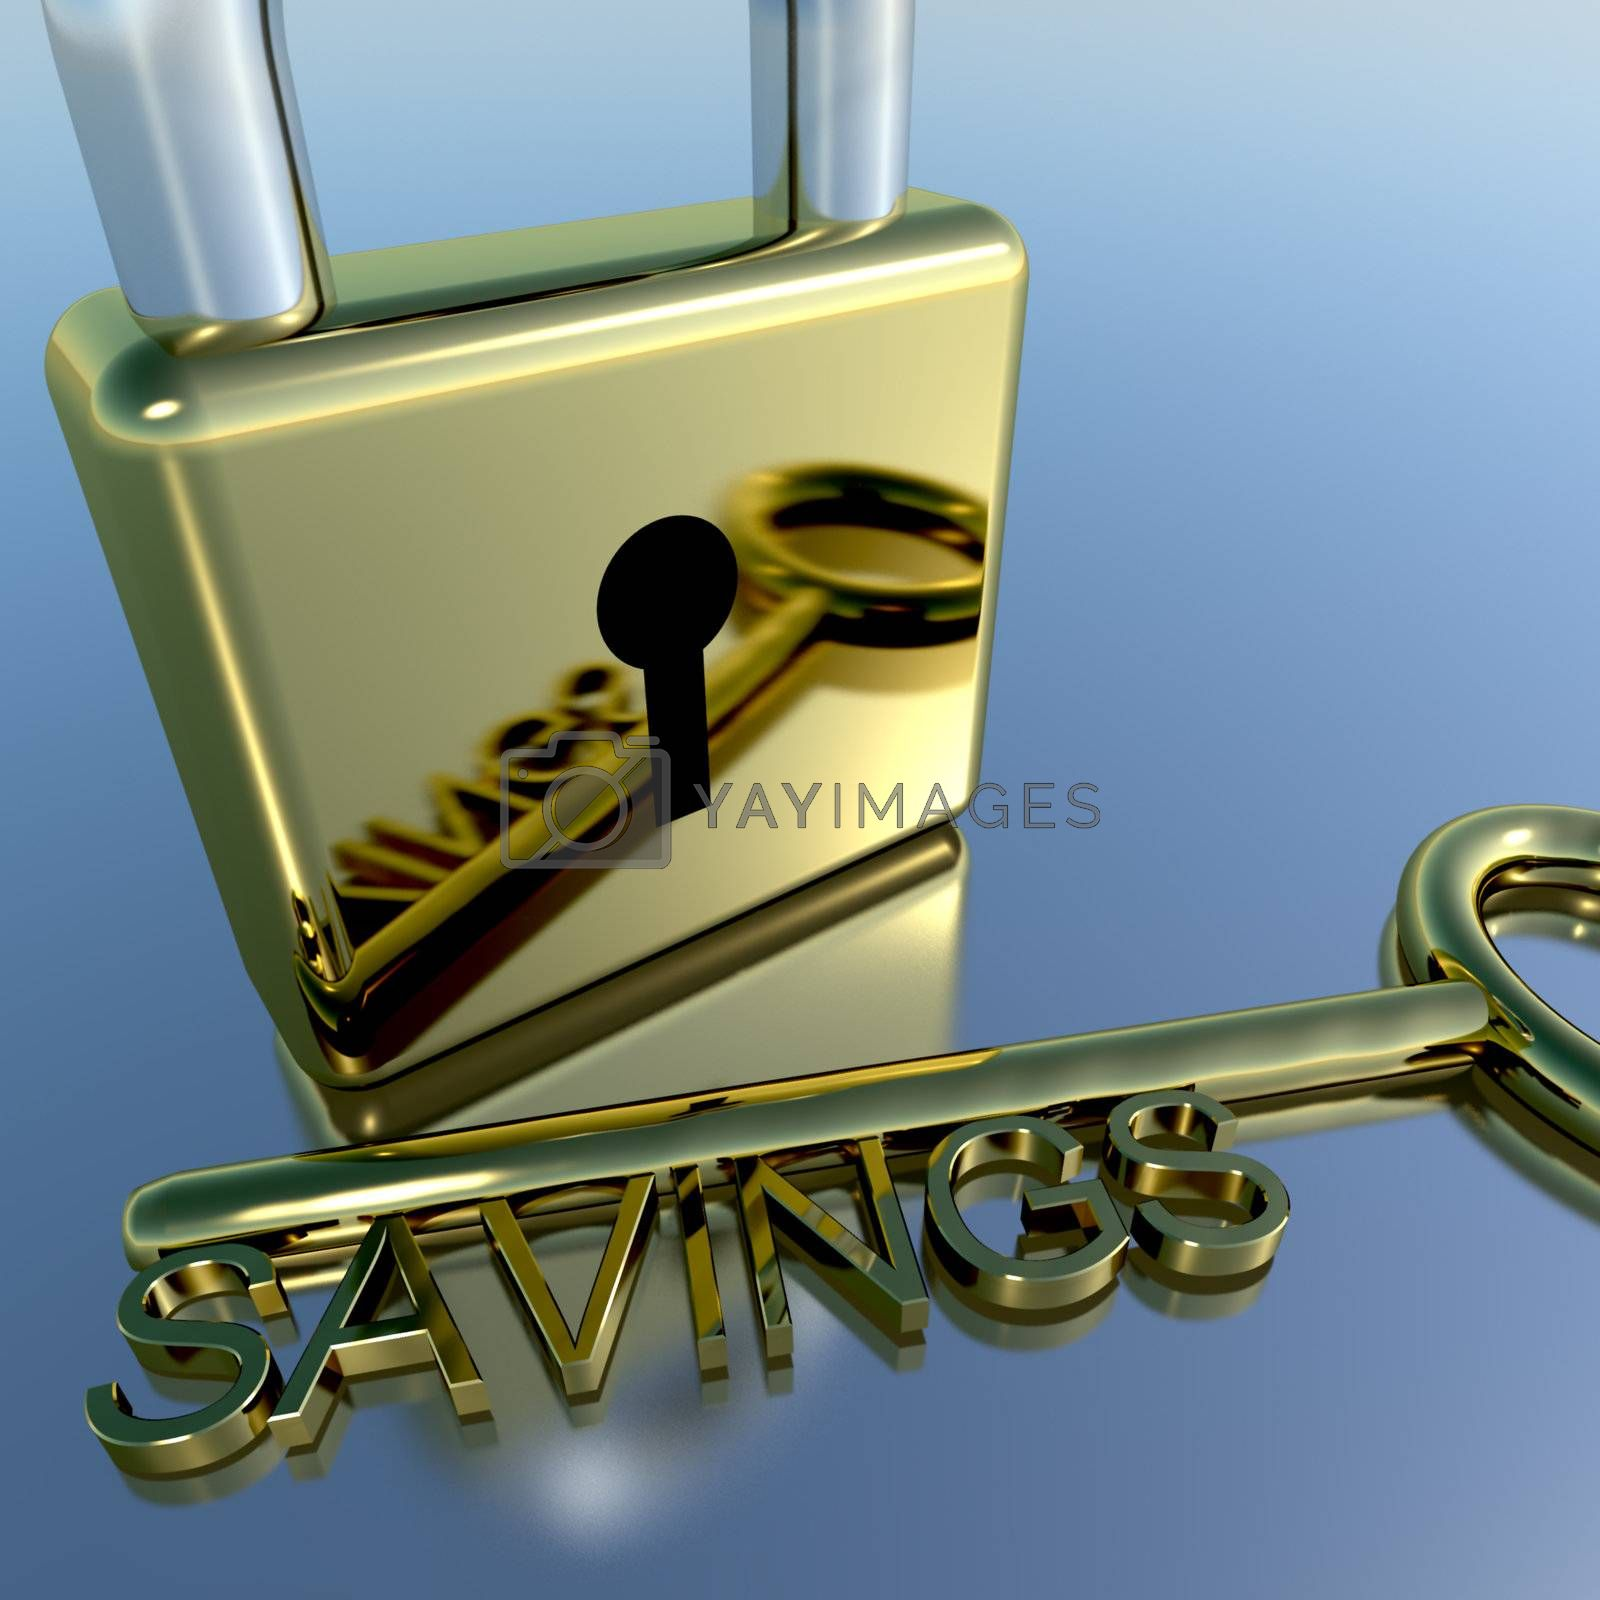 Padlock With Savings Key Showing Investment Growth Or Wealth